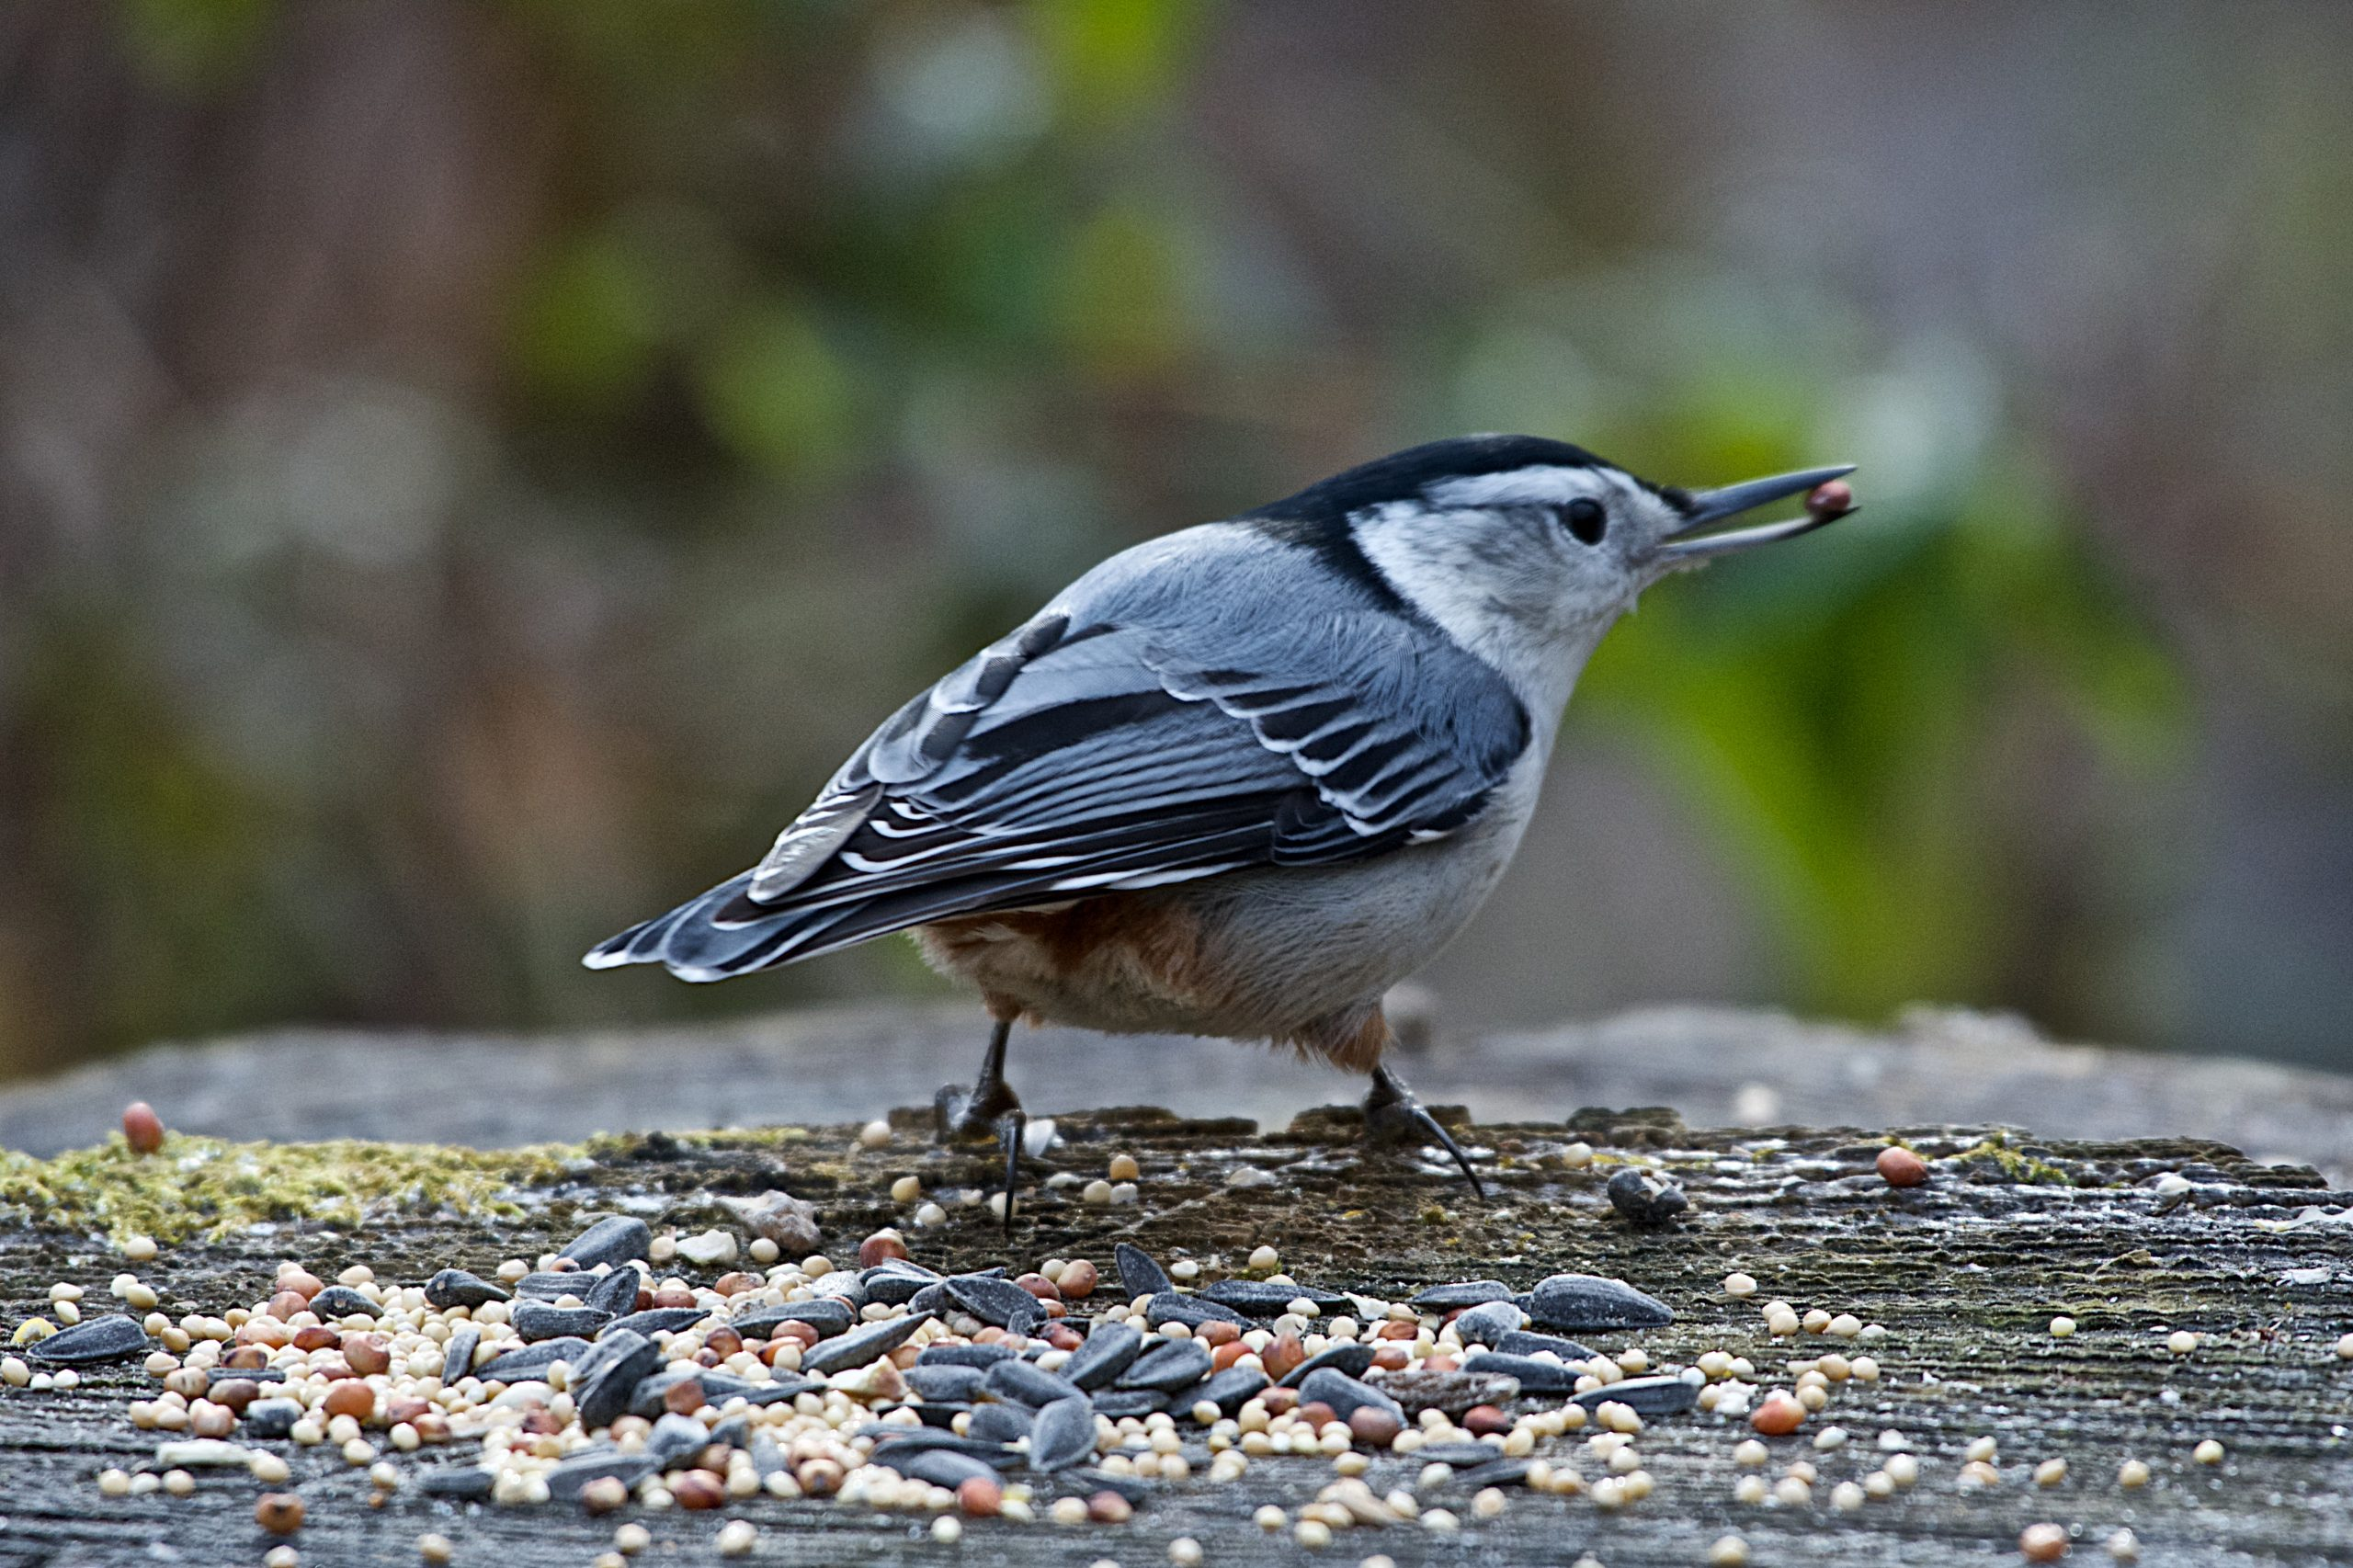 A nuthatch sits on a log. It has birdseed in its beak on an early winter morning.